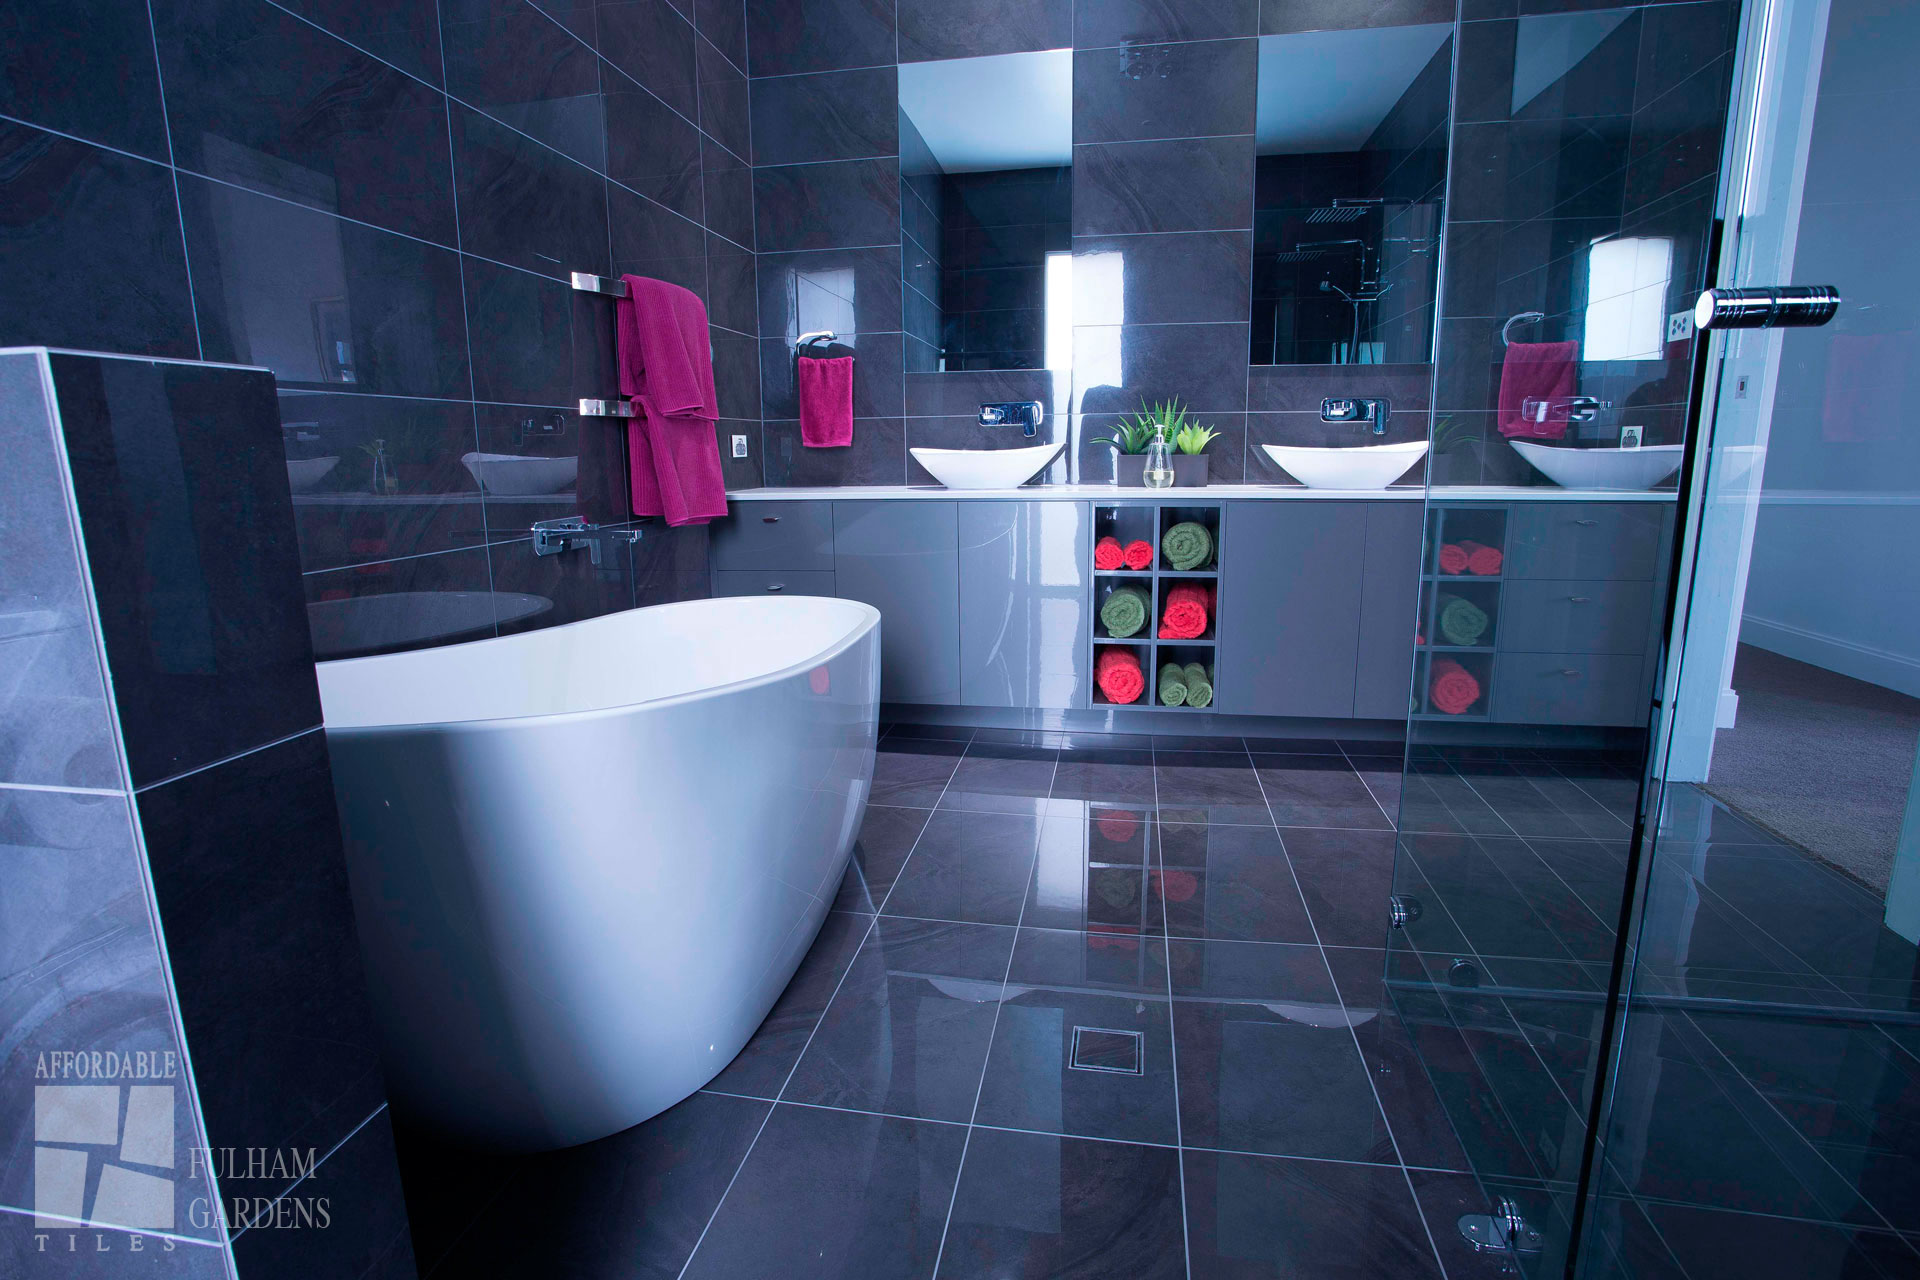 Specials | Affordable Tiles Adelaide